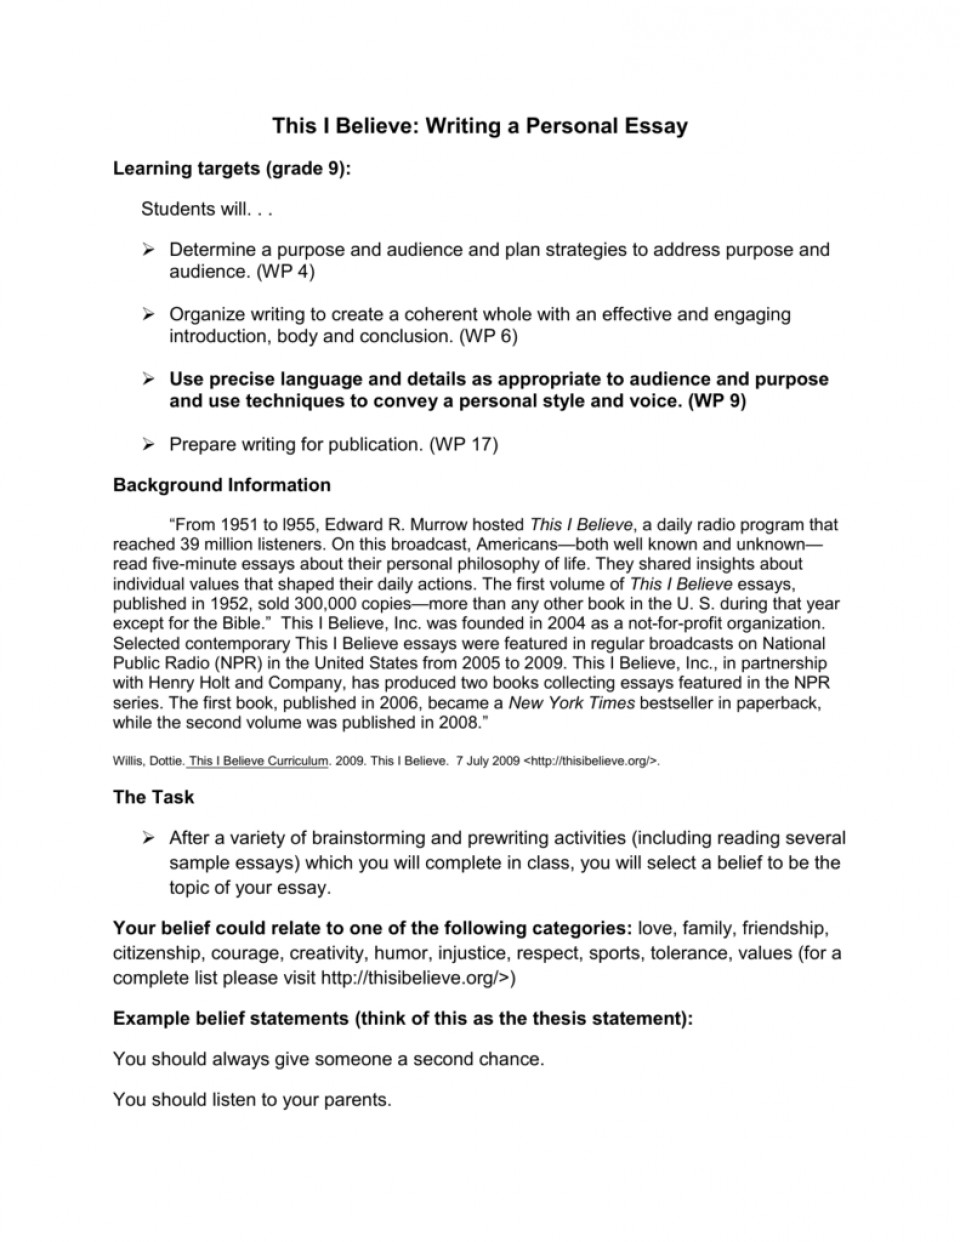 002 Essay Example I Belive Essays 006750112 1 Surprising Believe About Sports Ideas 960